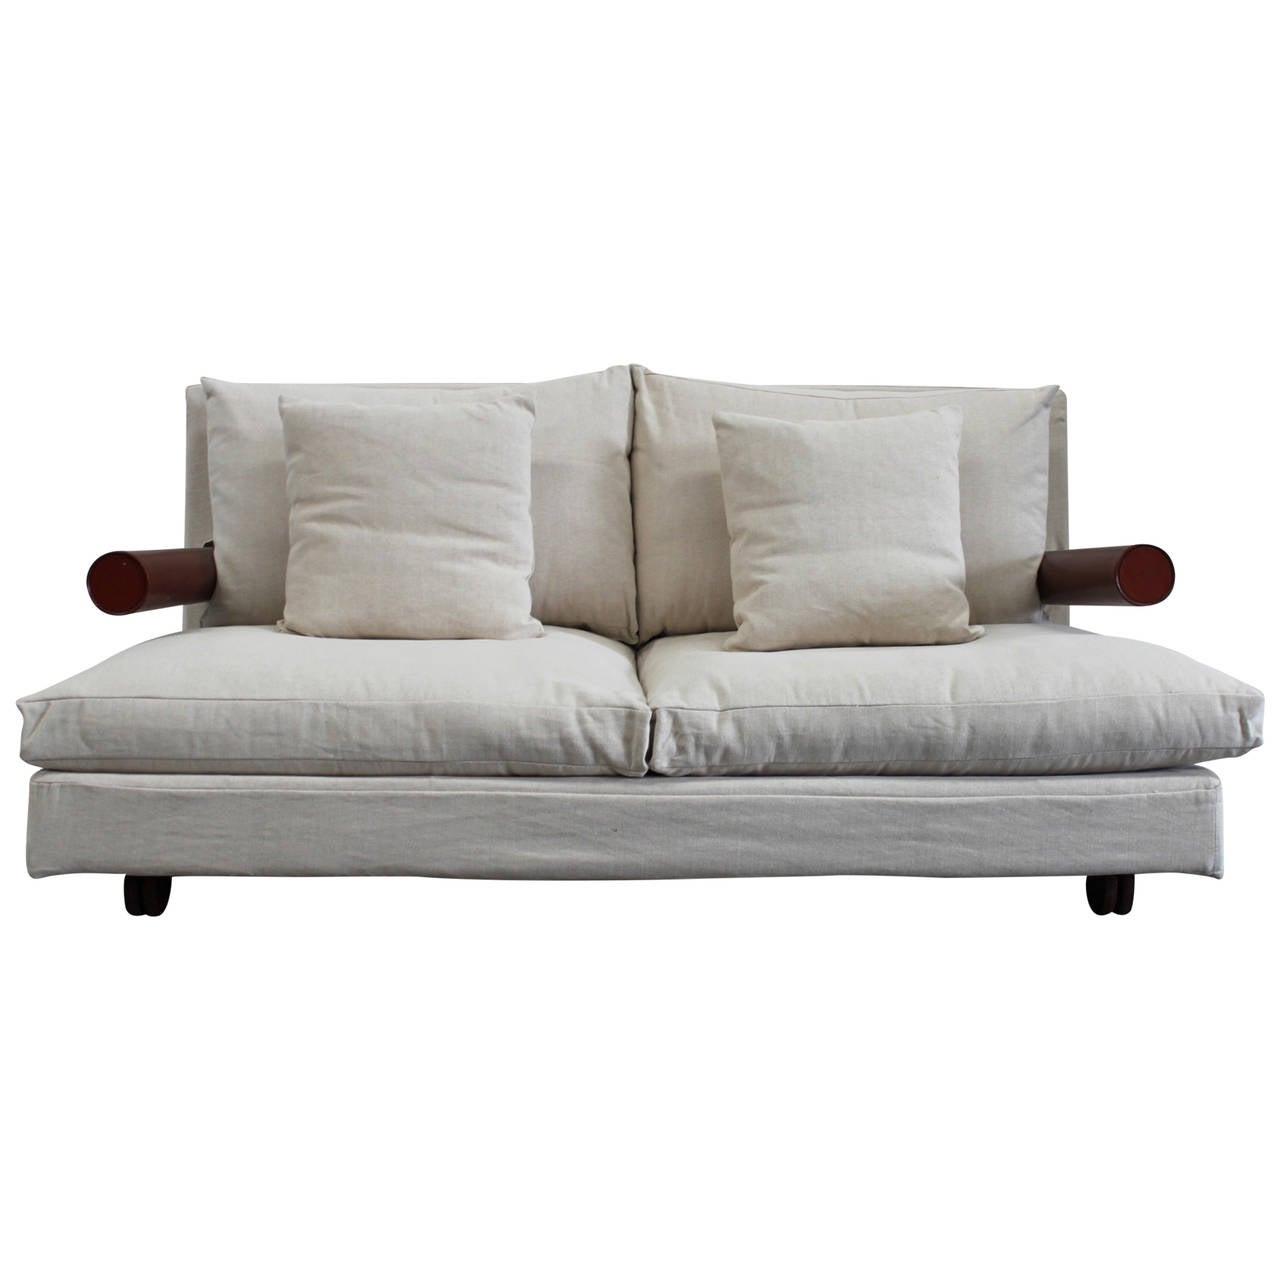 bb italia baisity large two seat sofa in cream woven linen fabric by bb italy furniture